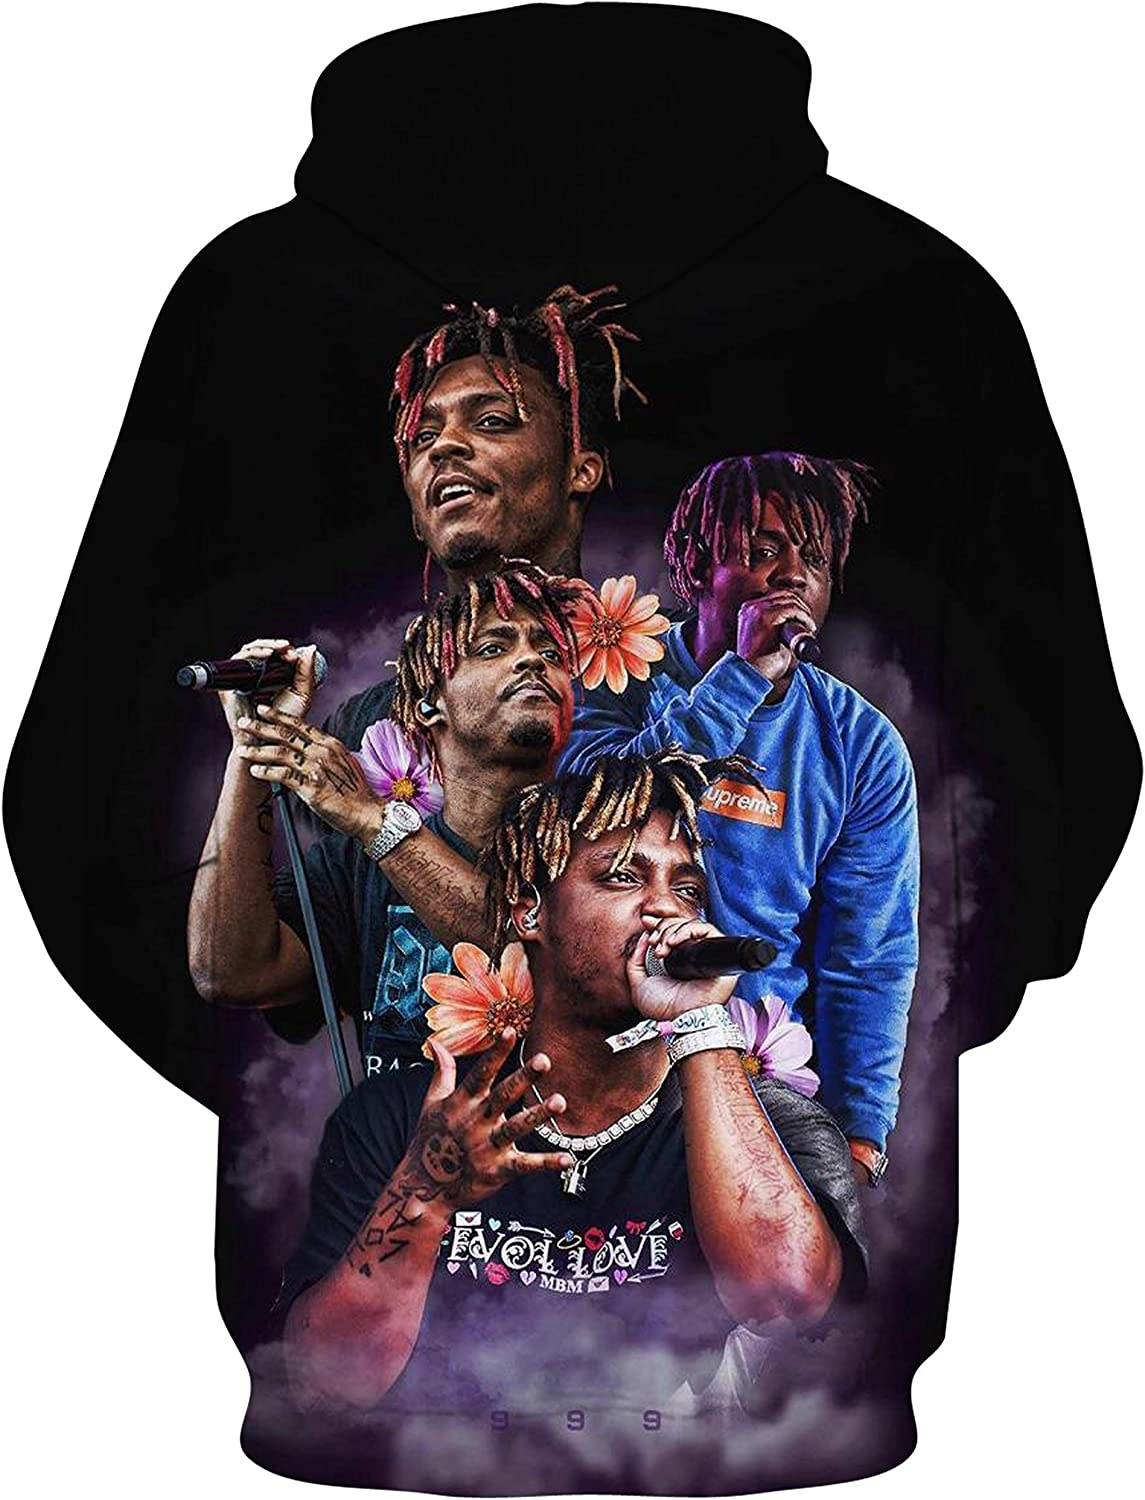 Rapper Ju-ice-Wrld 3d Printed Hoodies Pullover Sweatshirt With Front Pocket For Kids.